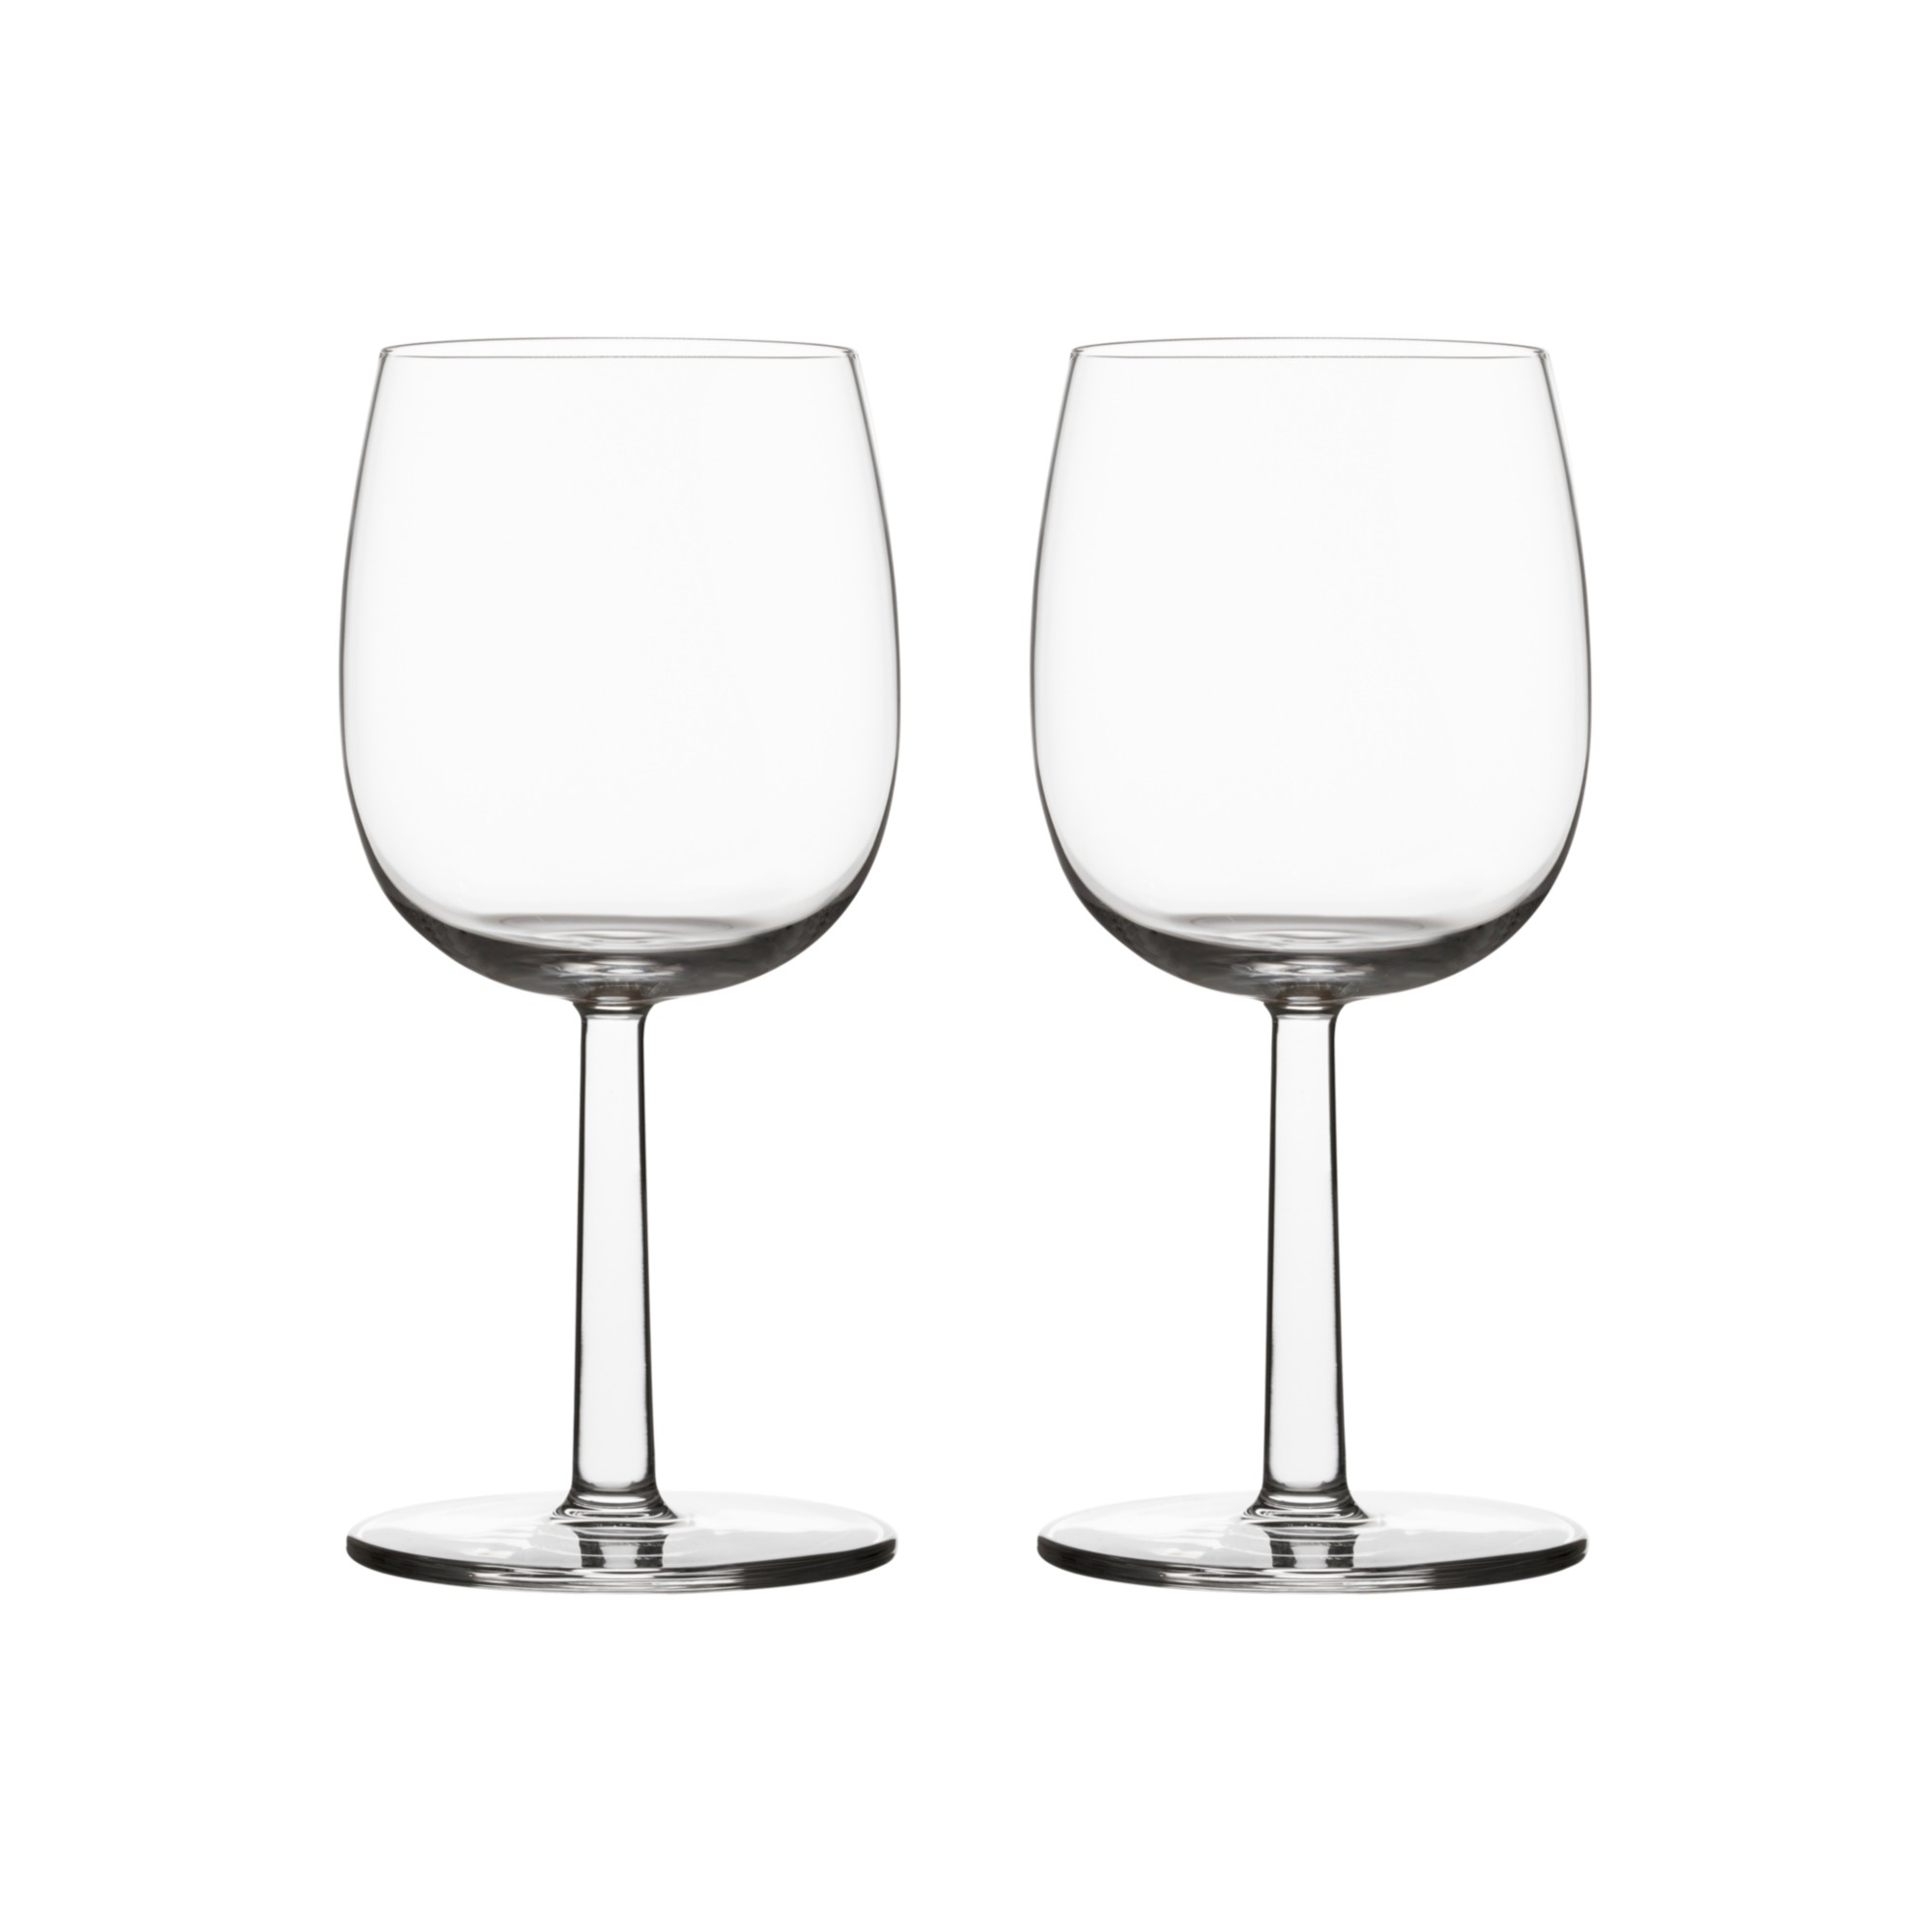 Iittala Weingläser Raami Red Wine Glass 28 Cl, 2-pcs - Iittala @ Royaldesign